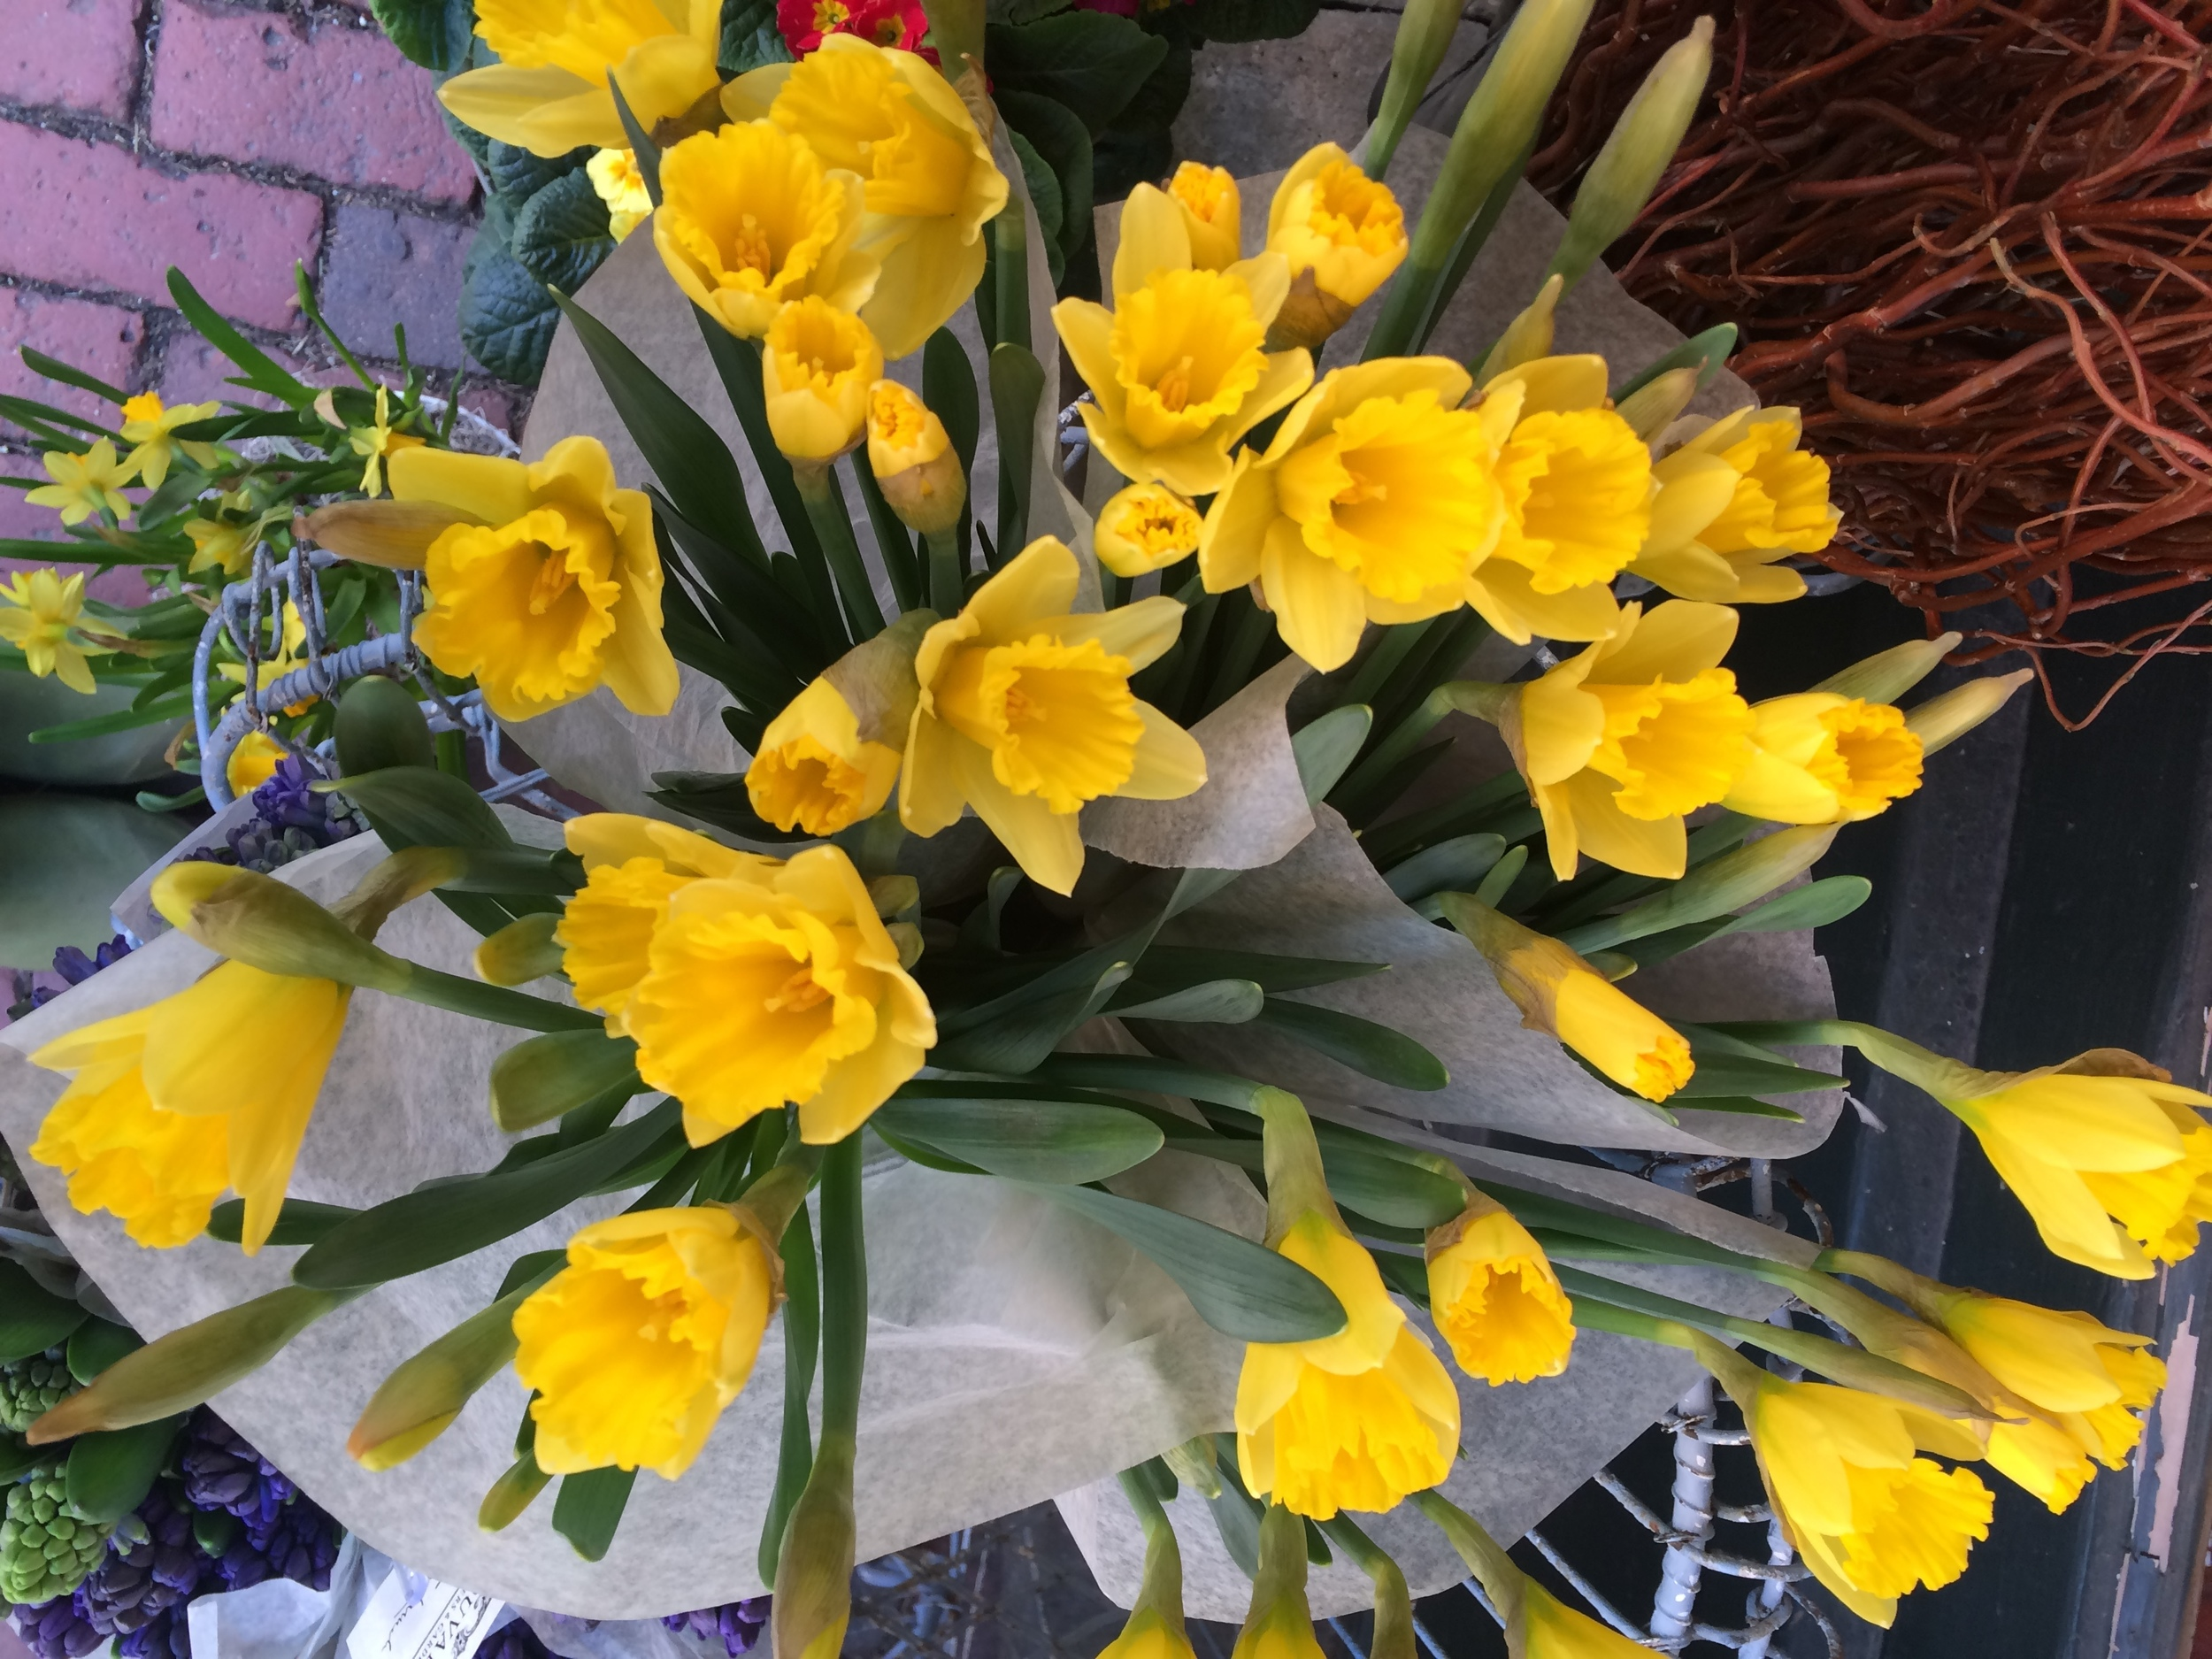 Daffodils bring a bright ray of sunshine into the room.